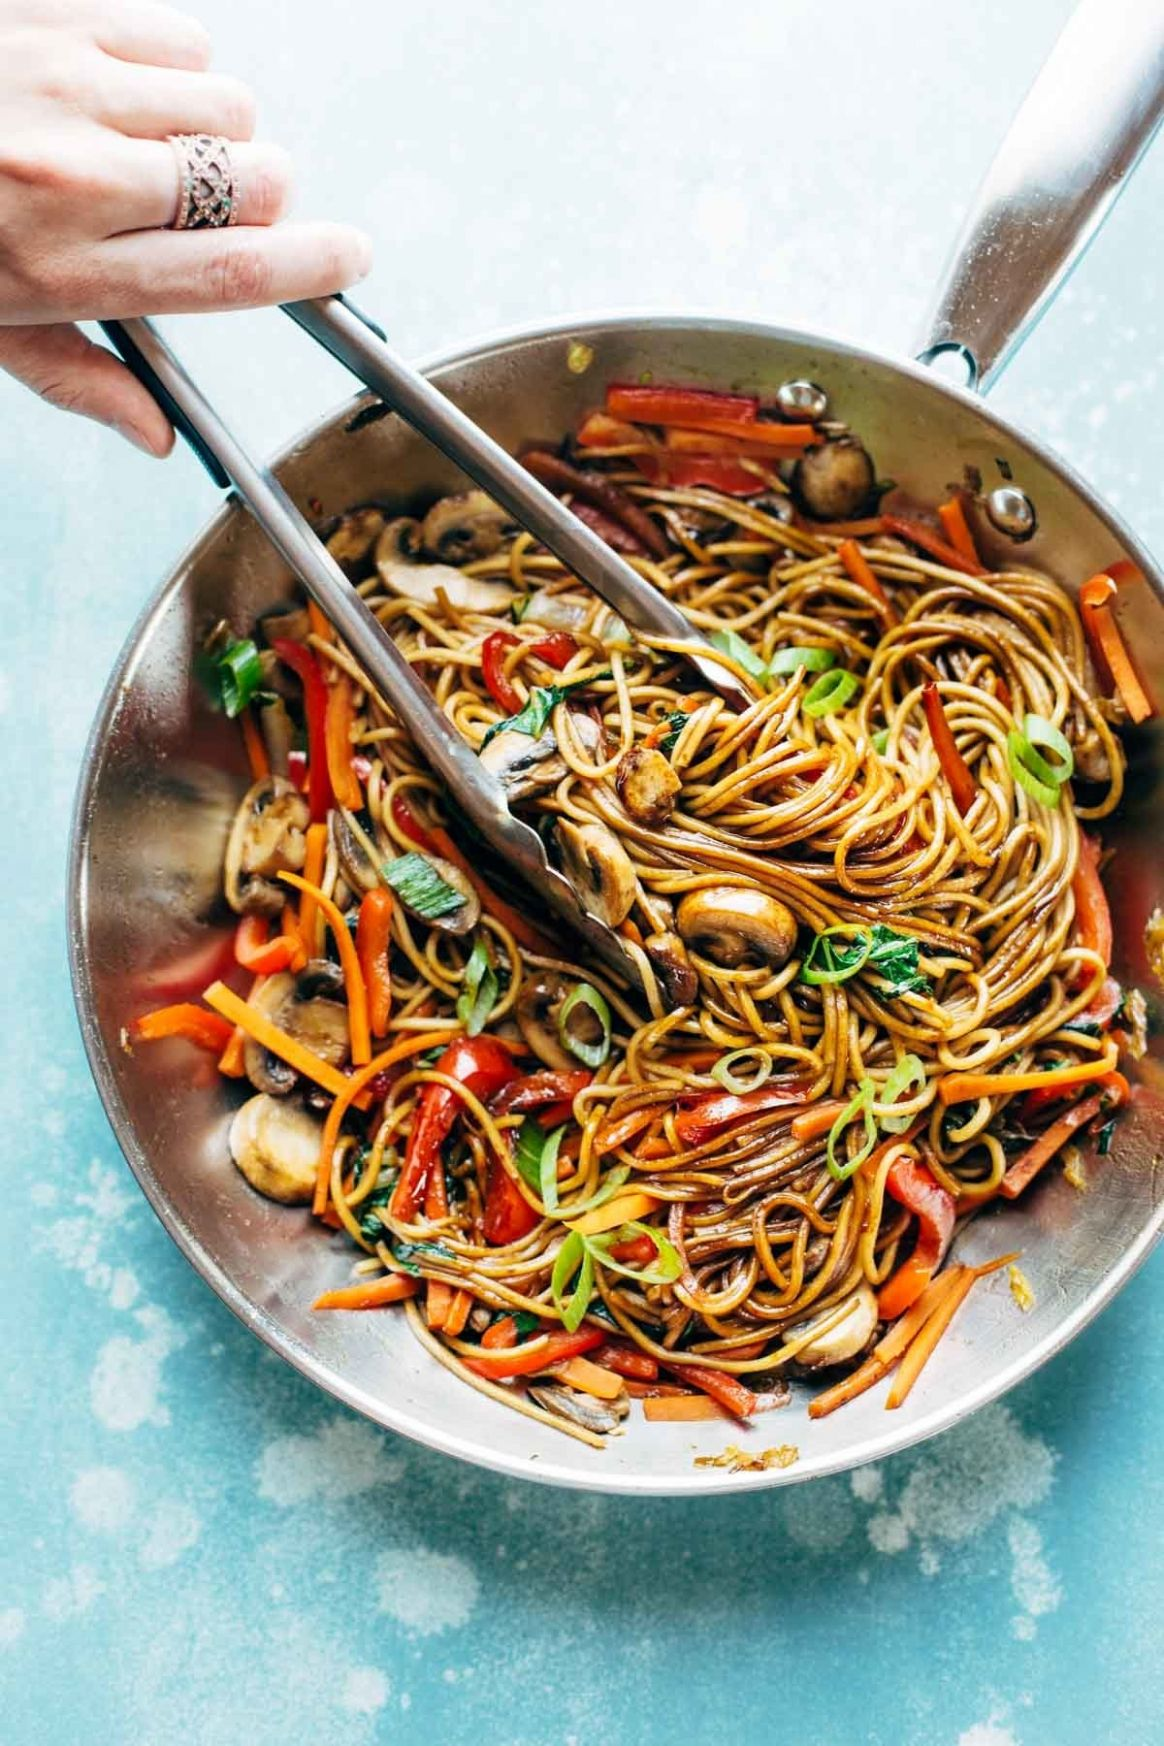 10 Easy Dinner Ideas For When You're Not Sure What To Make